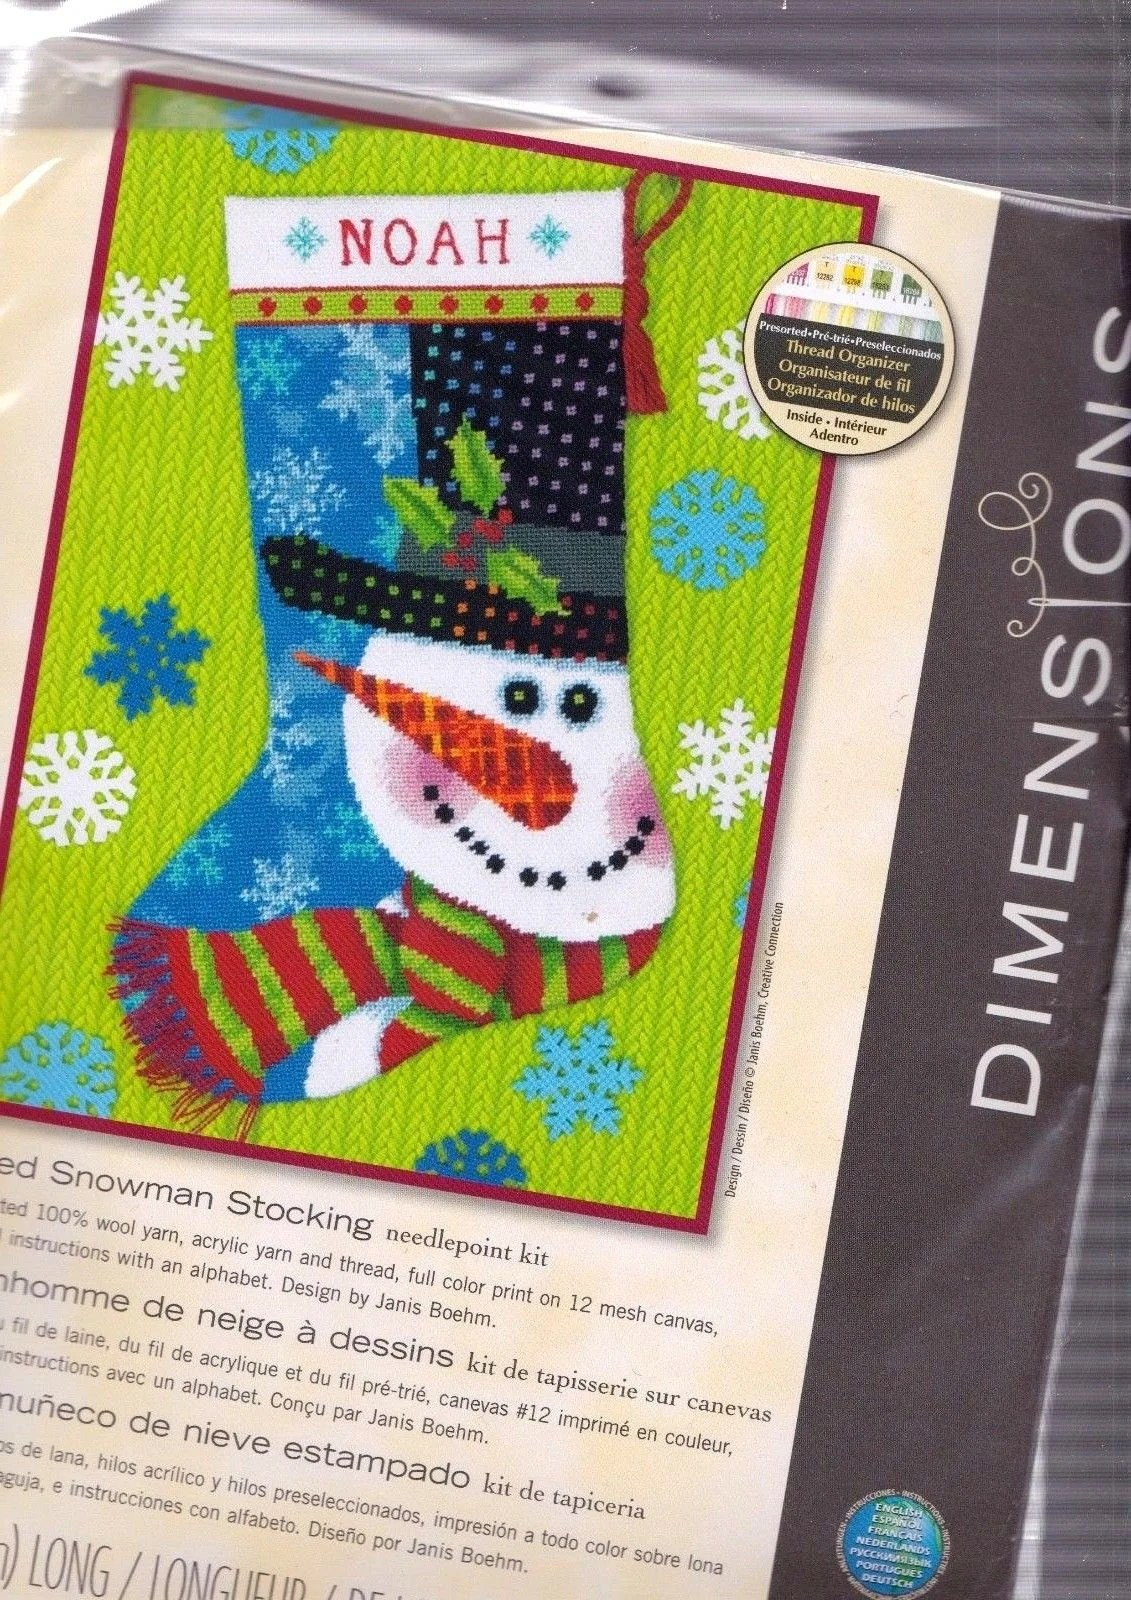 Noah Interieur Dimensions Patterned Snowman Christmas Snow Yarn Needlepoint Stocking Kit 09155 N